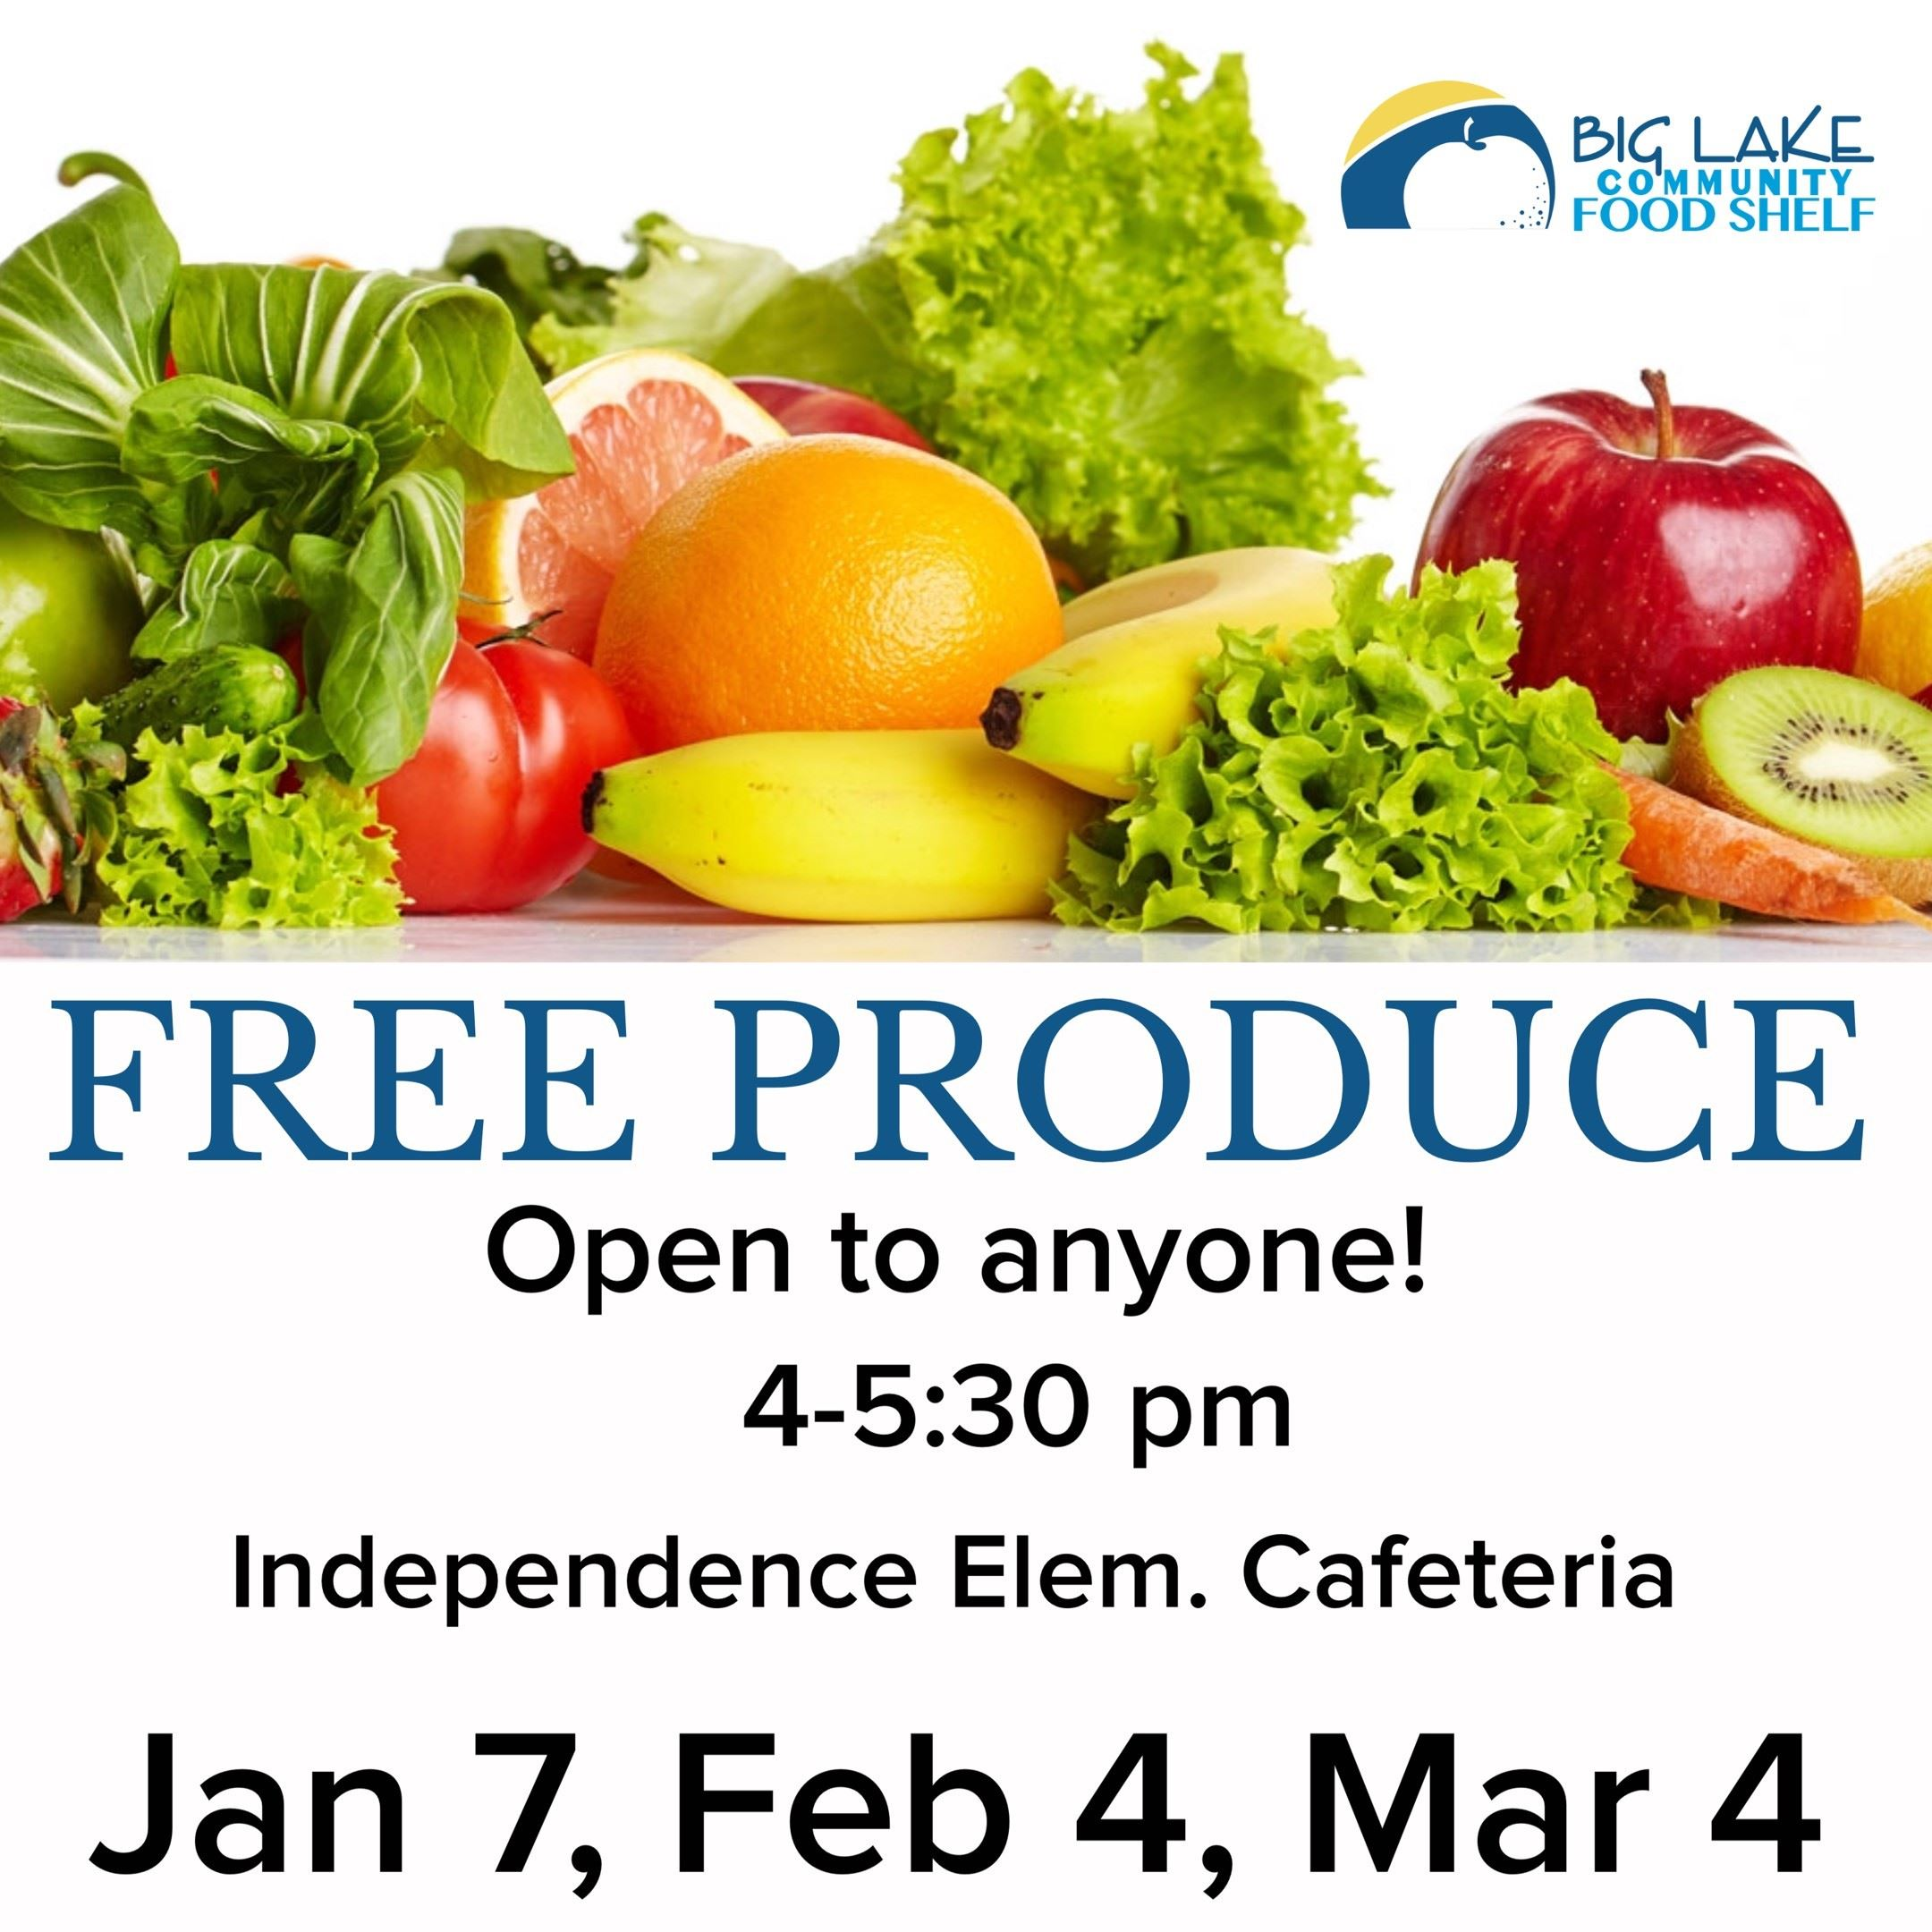 Free Produce Winter 2019